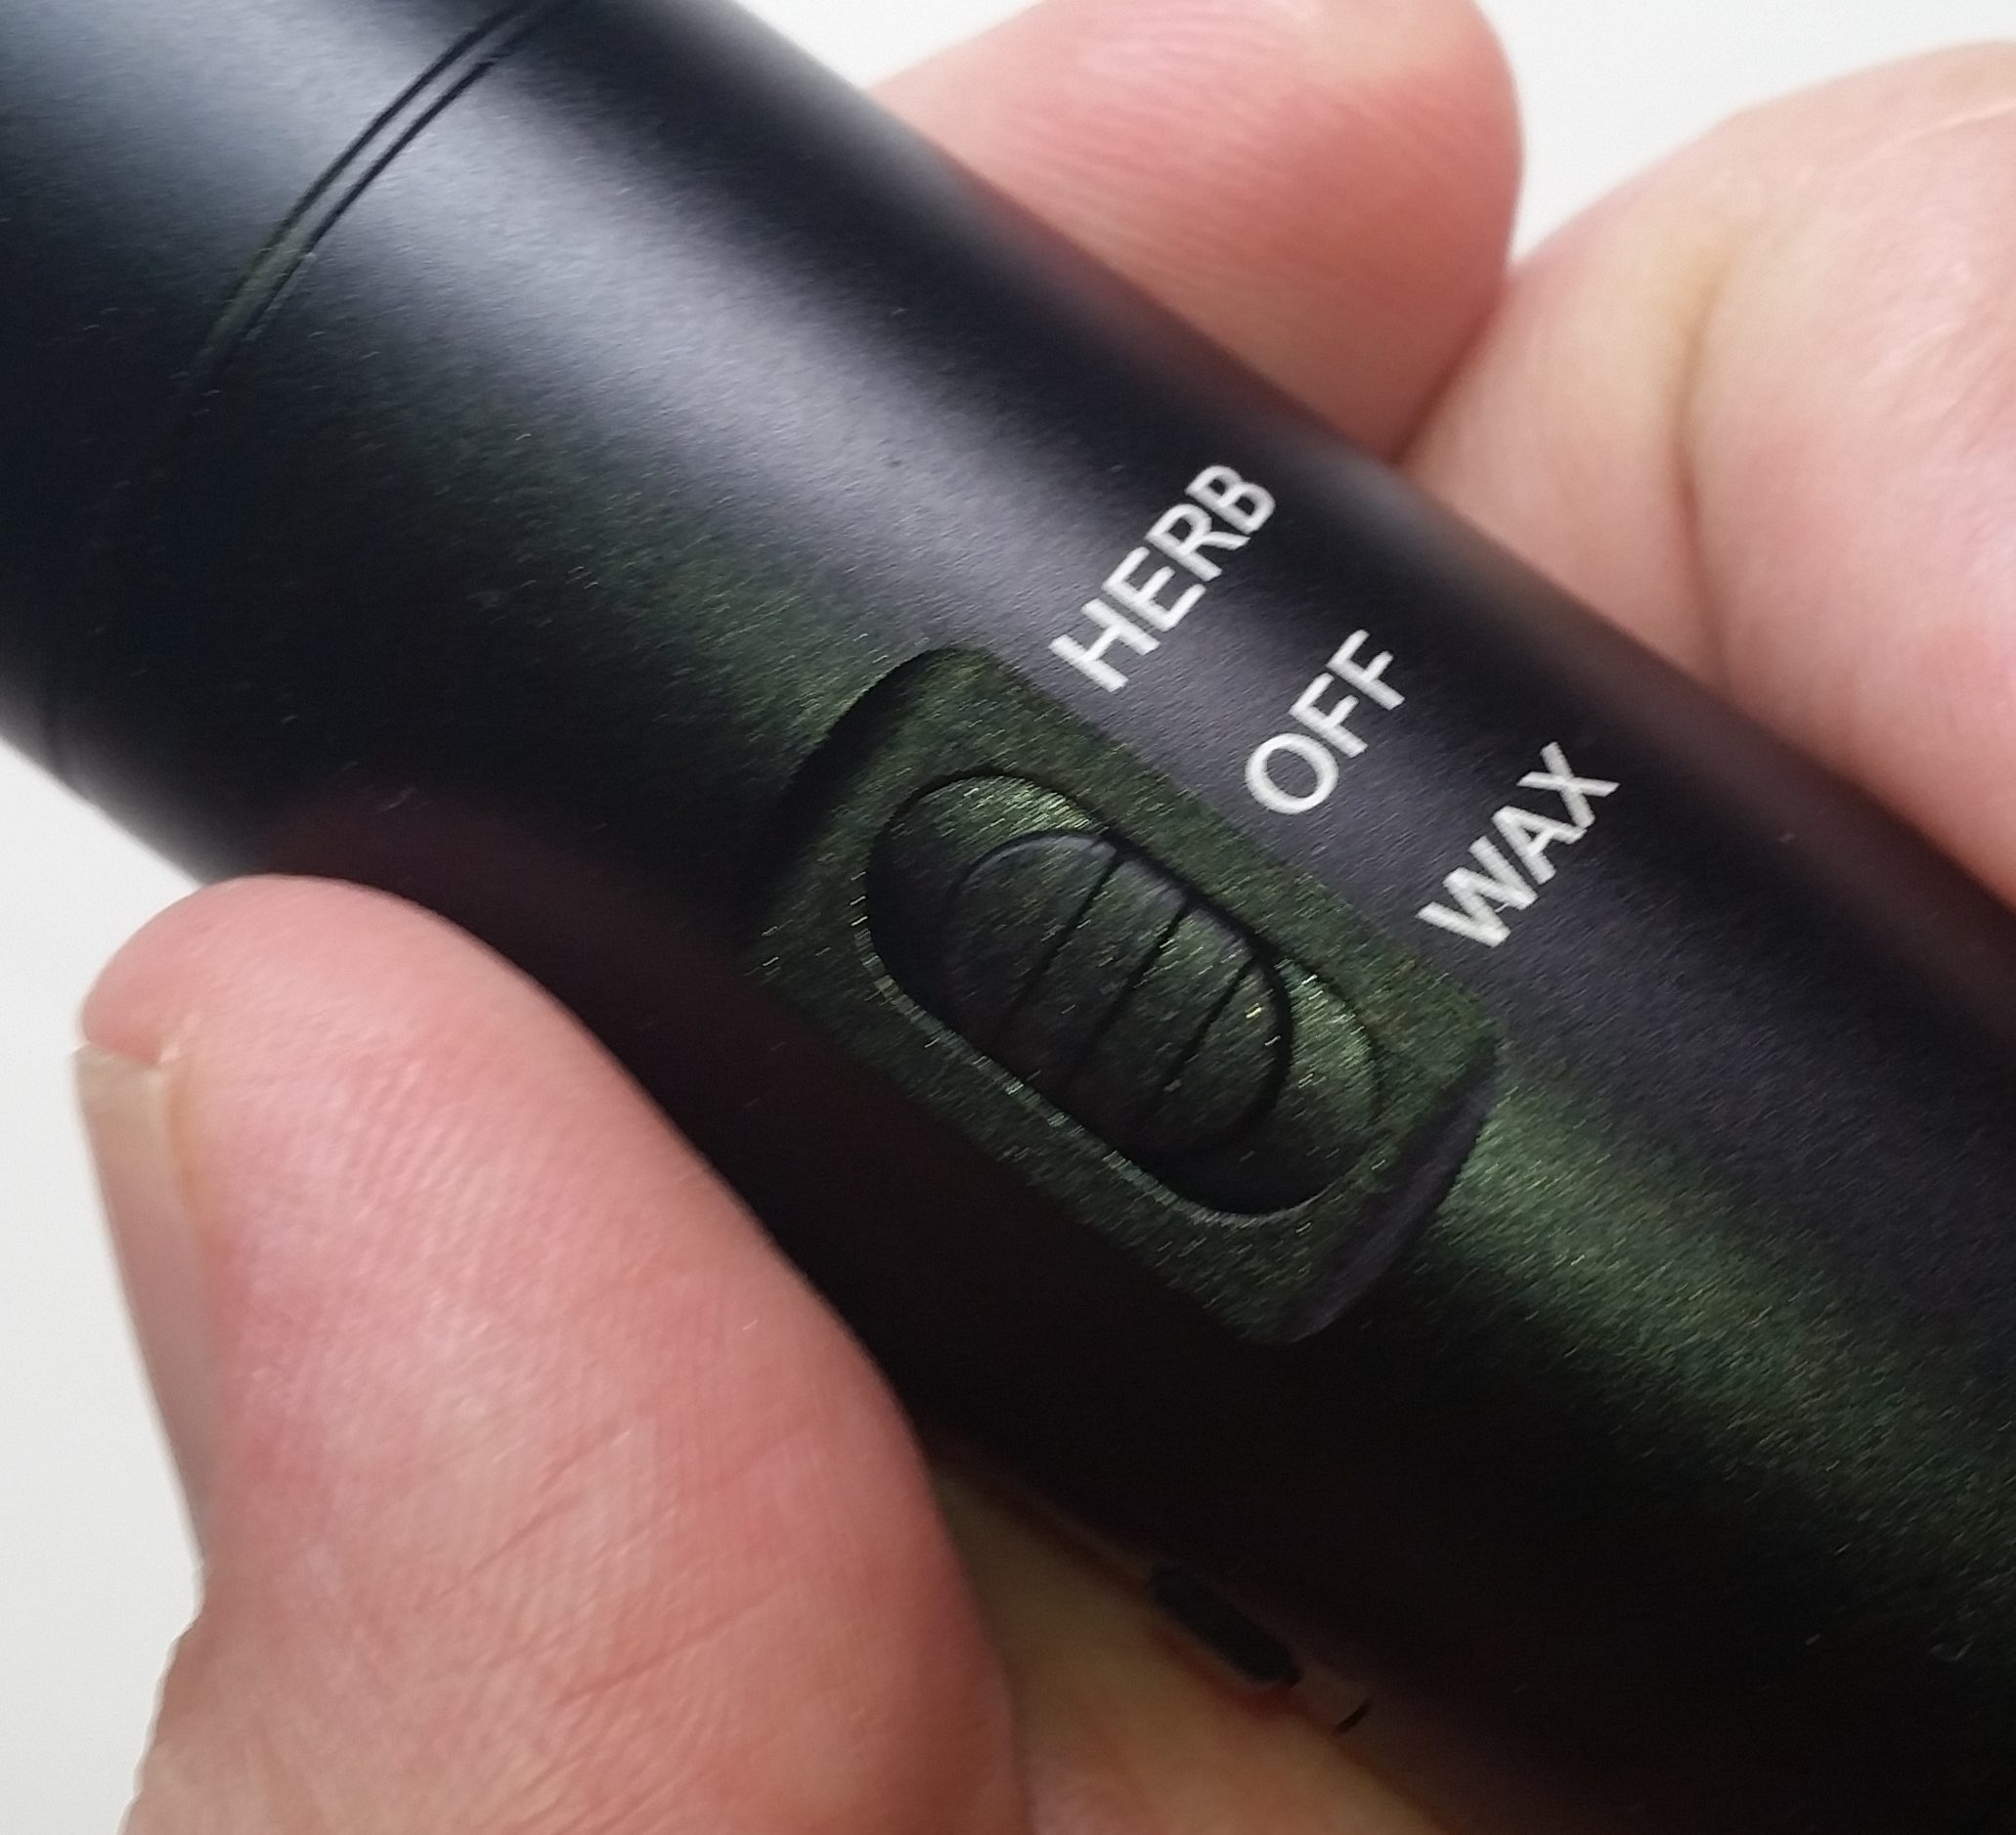 Best Vaporizers for Weed and Hash: Found, Tested and Reviewed. The Tourist by Focus-Vape Review